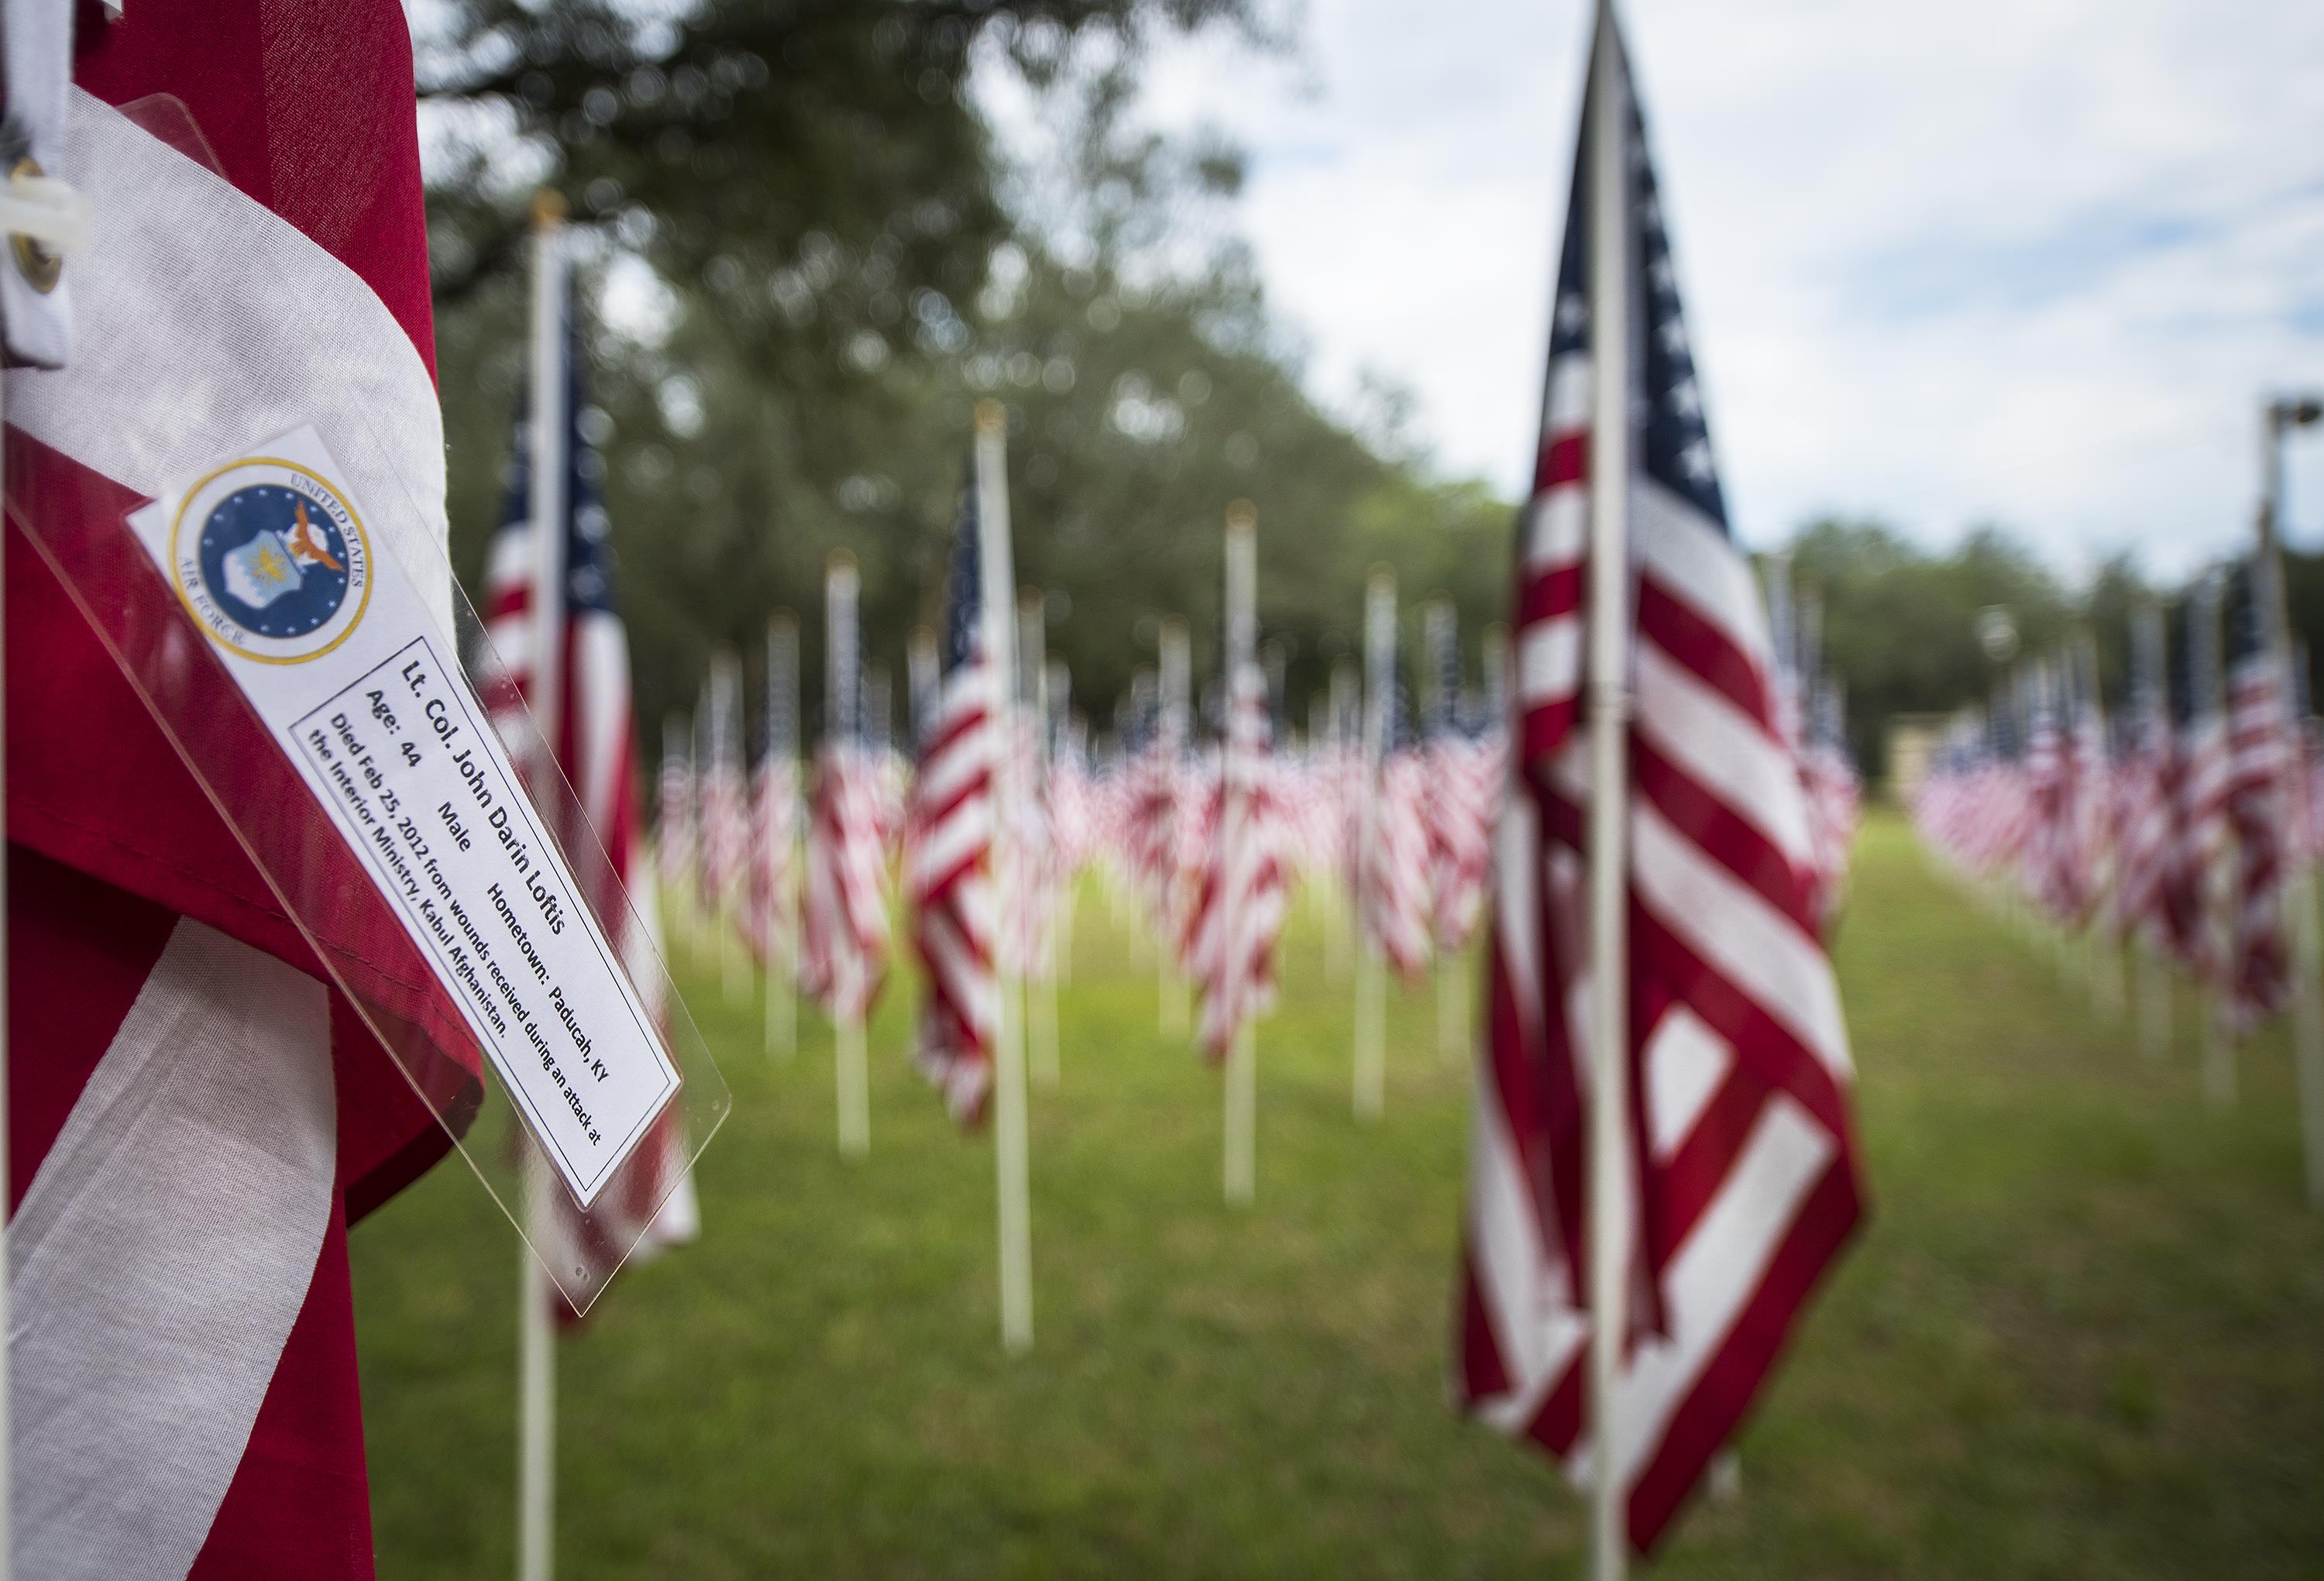 Field of Valor pays respect to military fallen